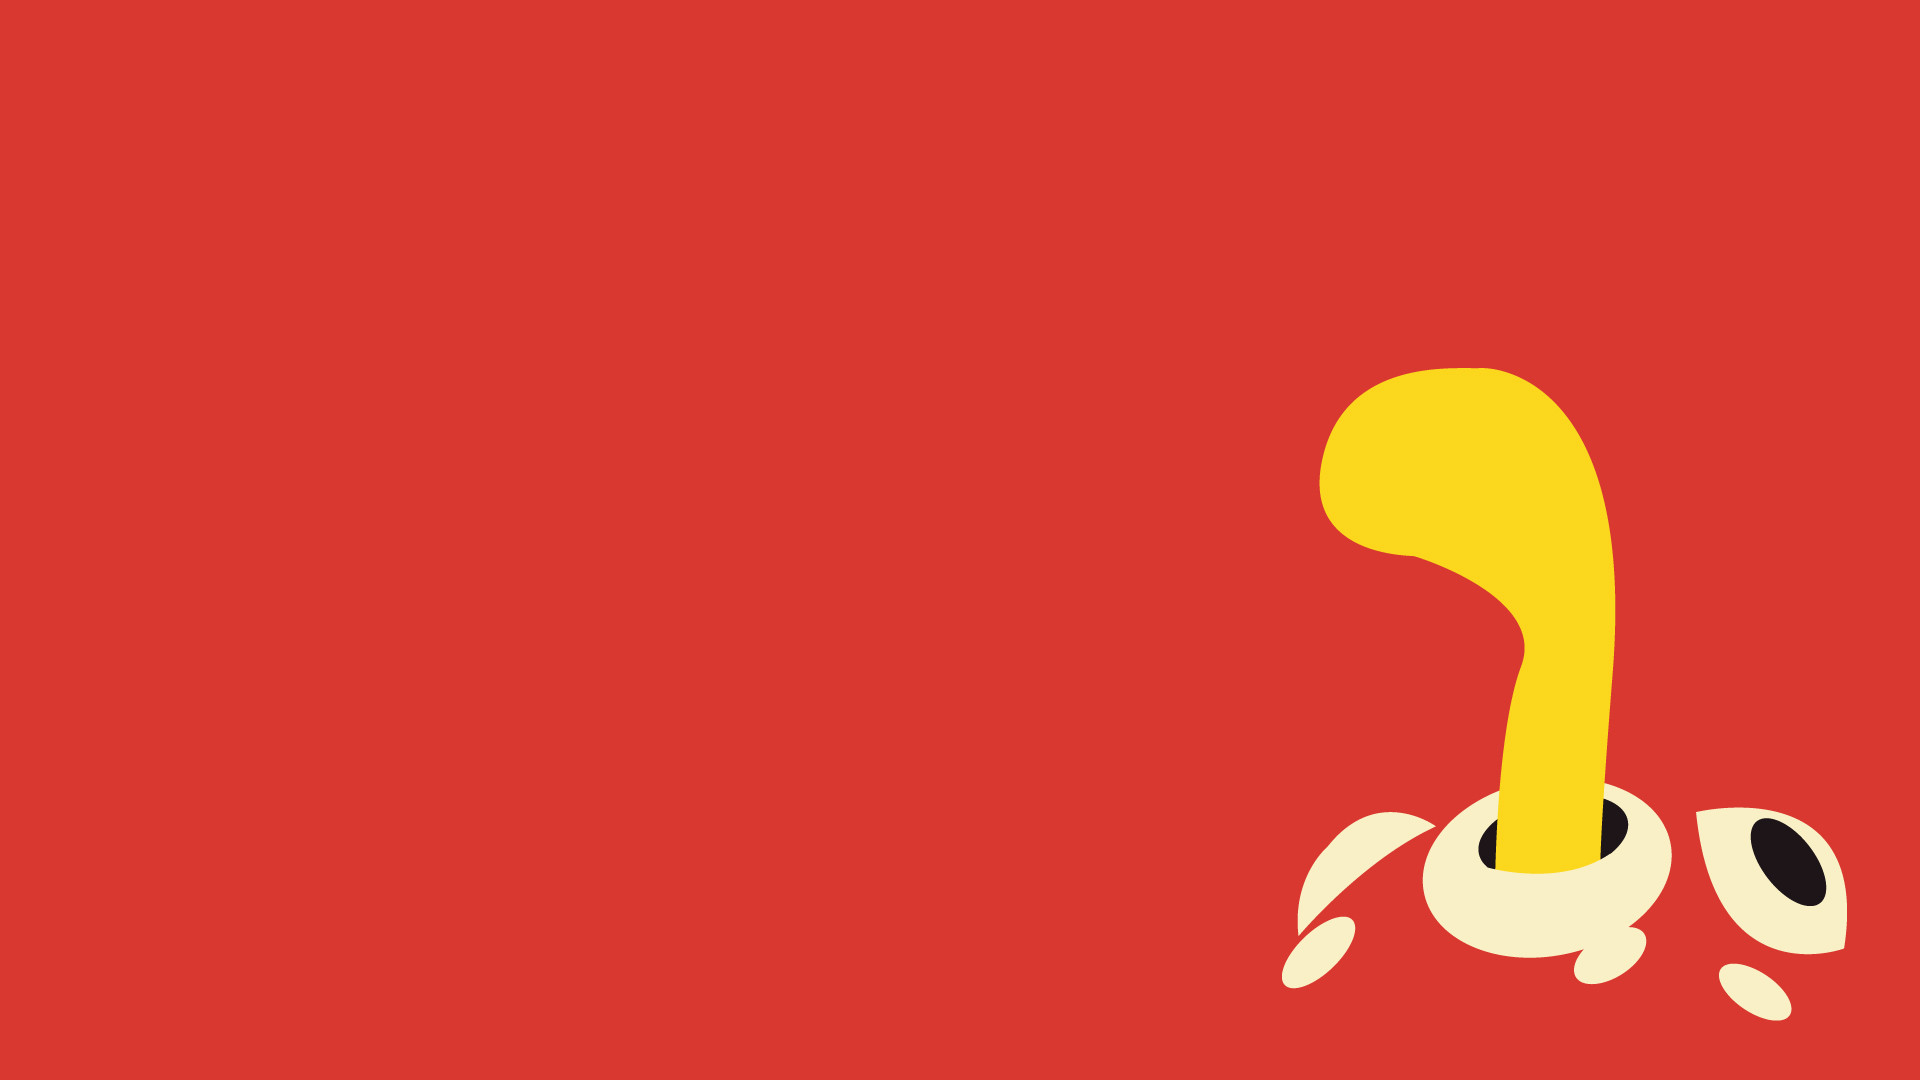 Res: 1920x1080, Shuckle, Minimalism, Red Background wallpaper thumb